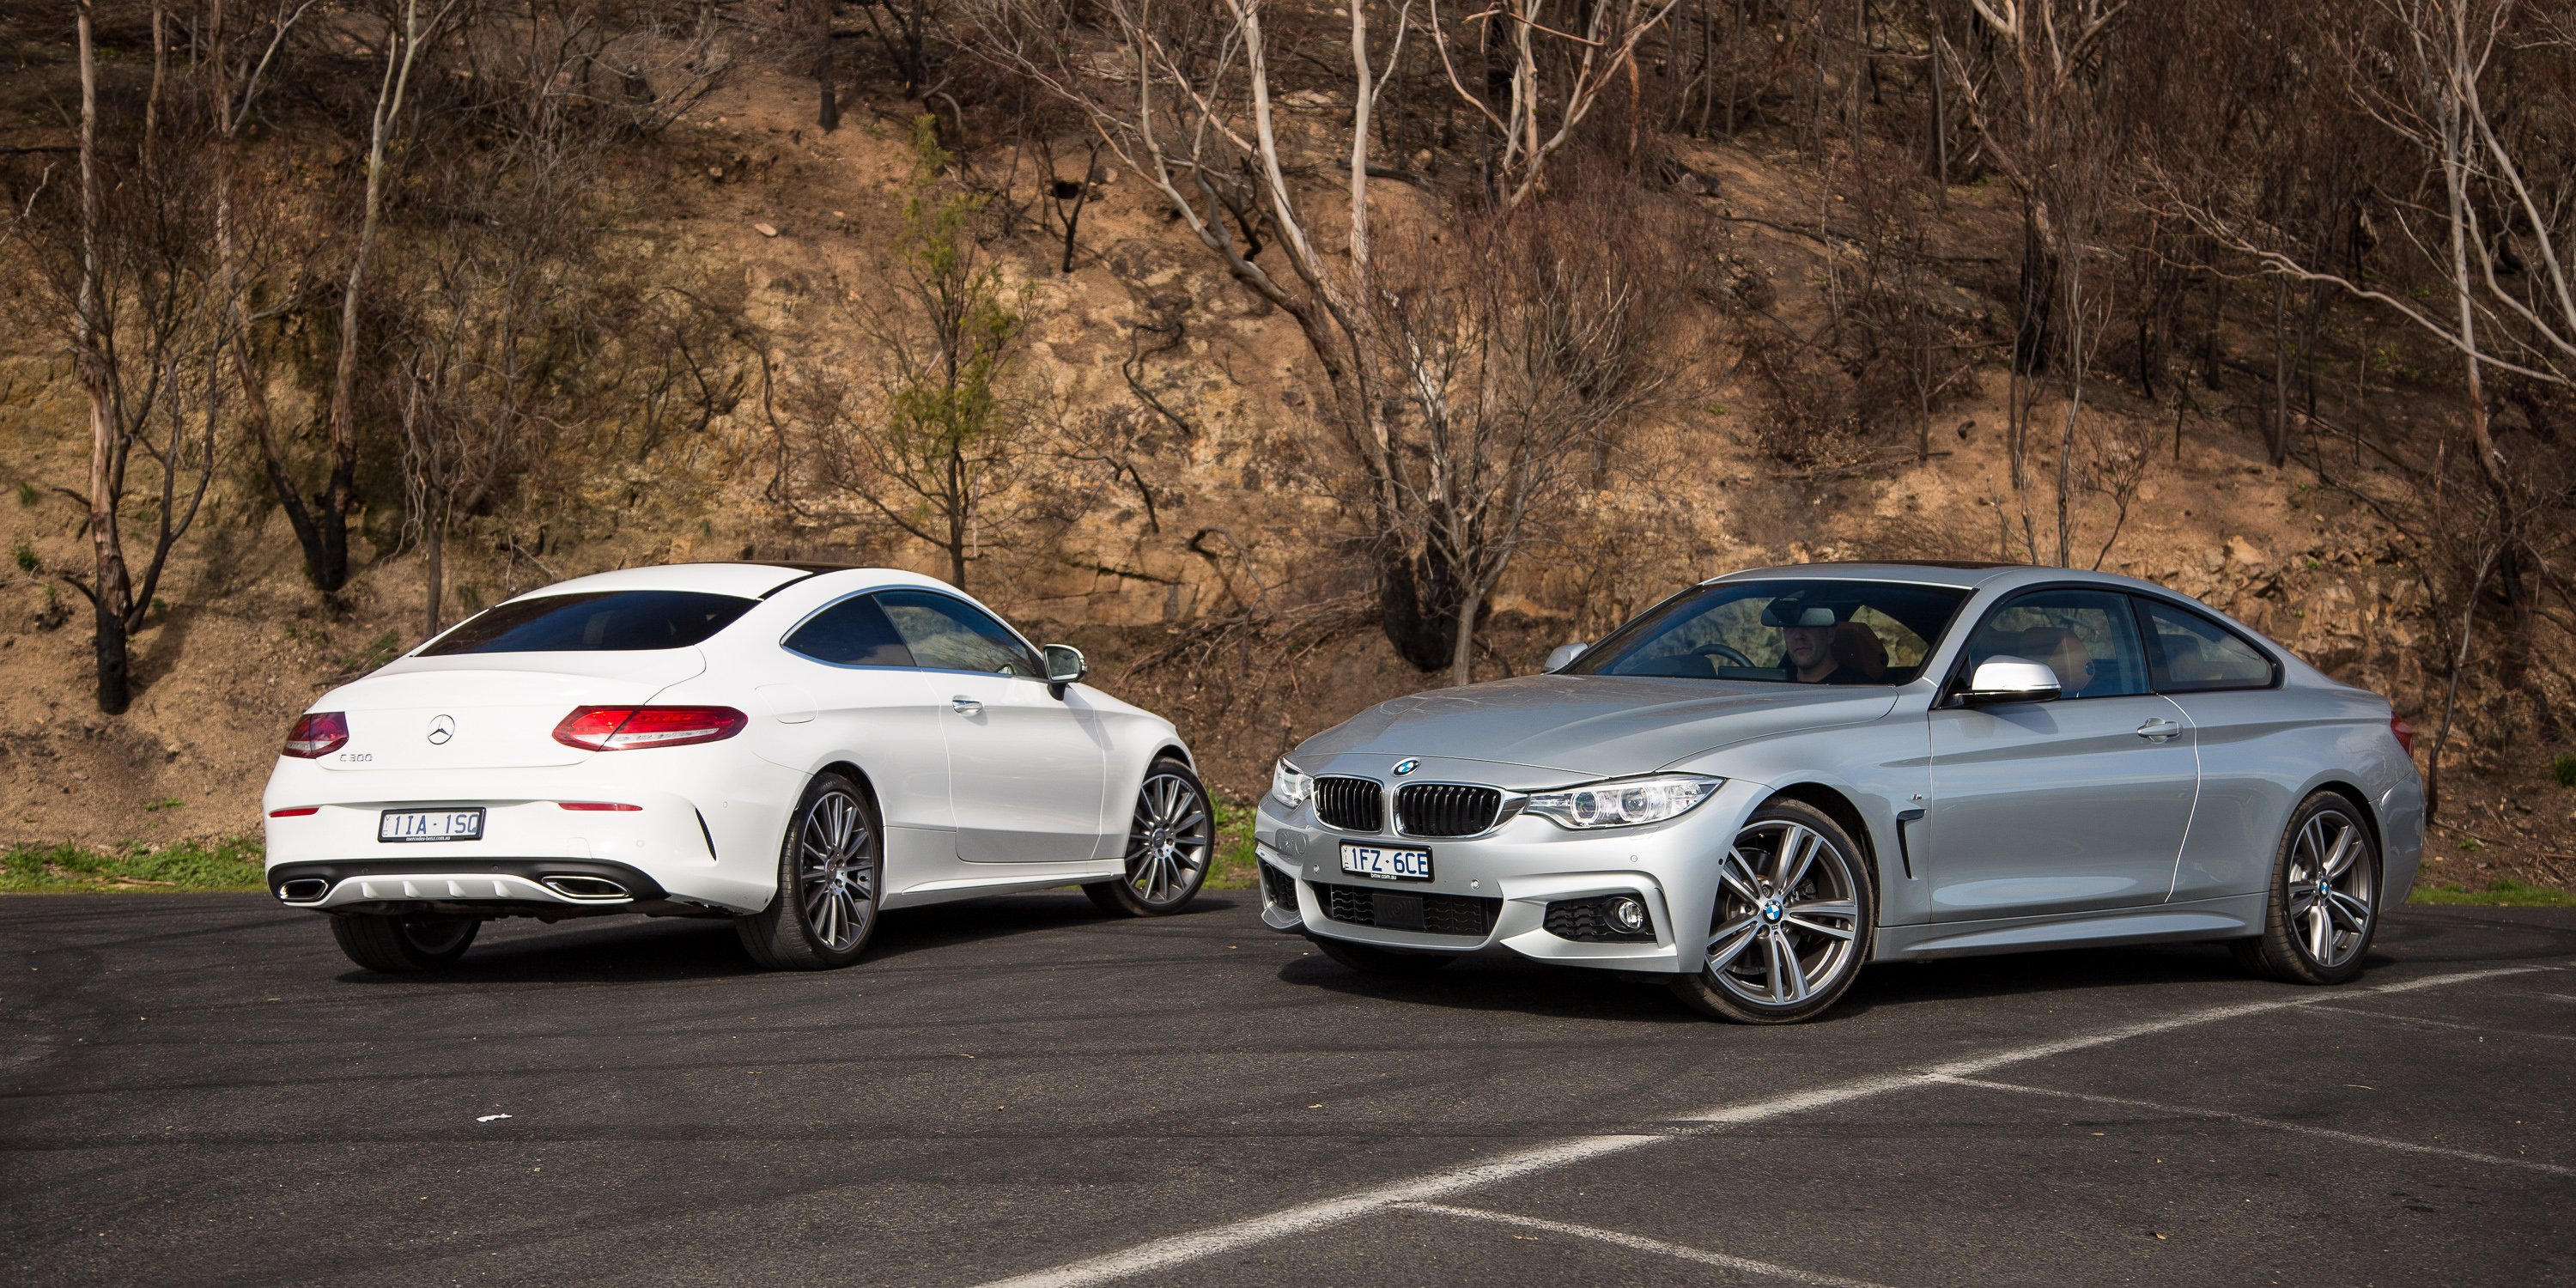 2016 BMW 7 Series Takes on Mercedes-Benz S-Class on Head 2 Head